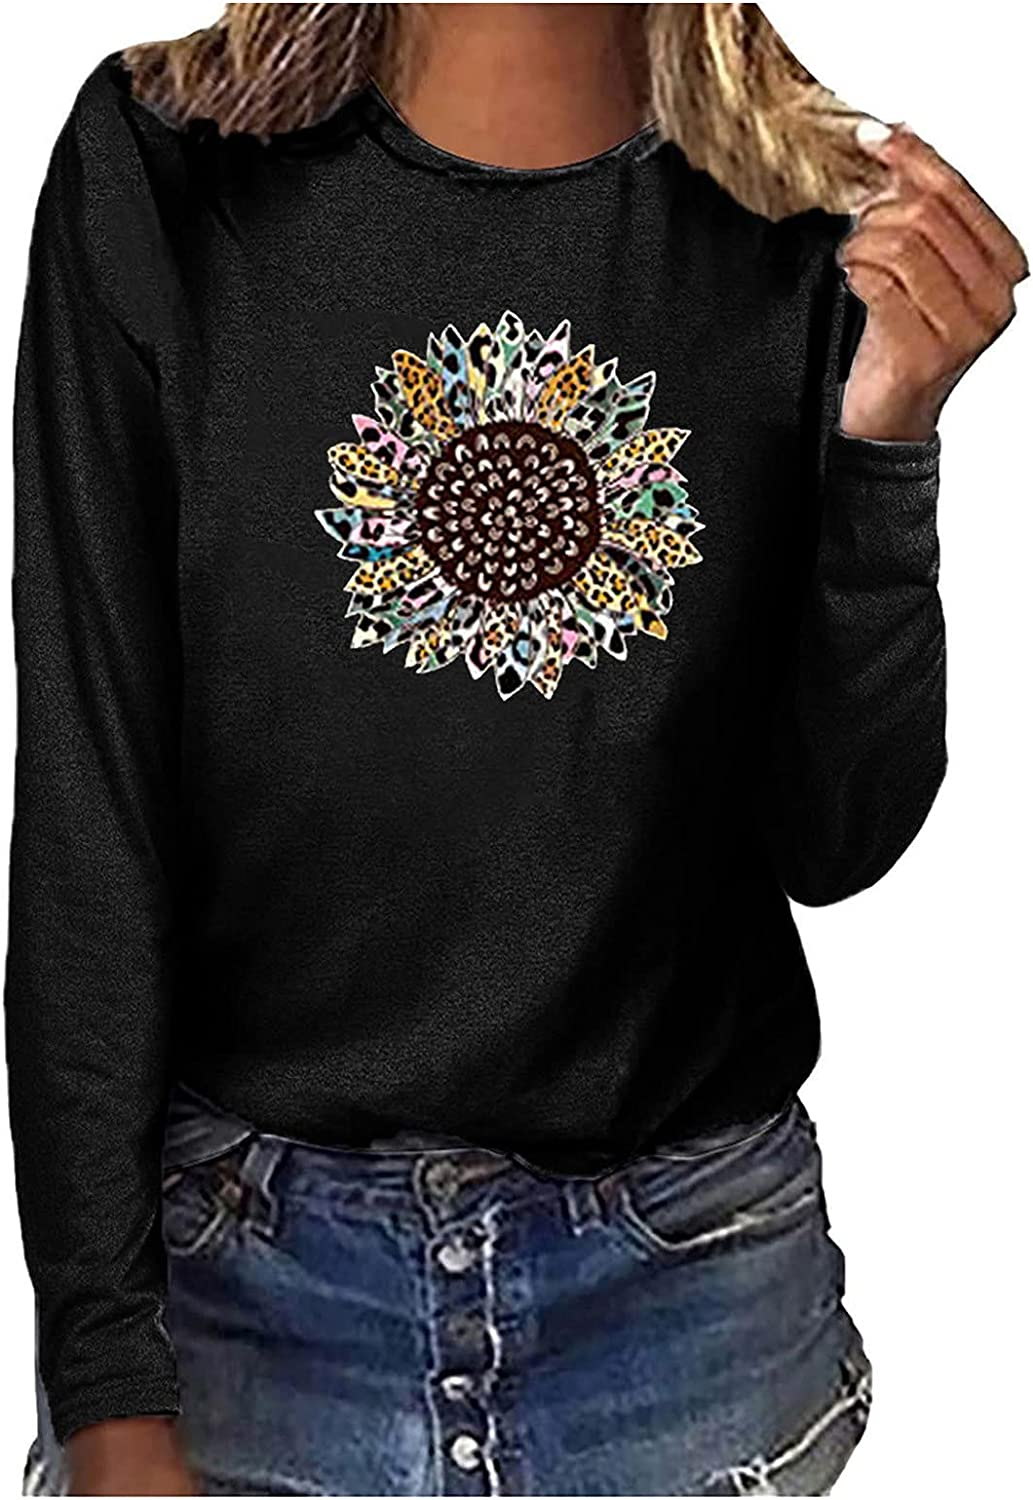 Auwer Women's Comfy Sunflower Print Tops Loose Long Sleeve T-Shirts Casual Crew Neck Flowy Tunics Comfy Breathable Blouses